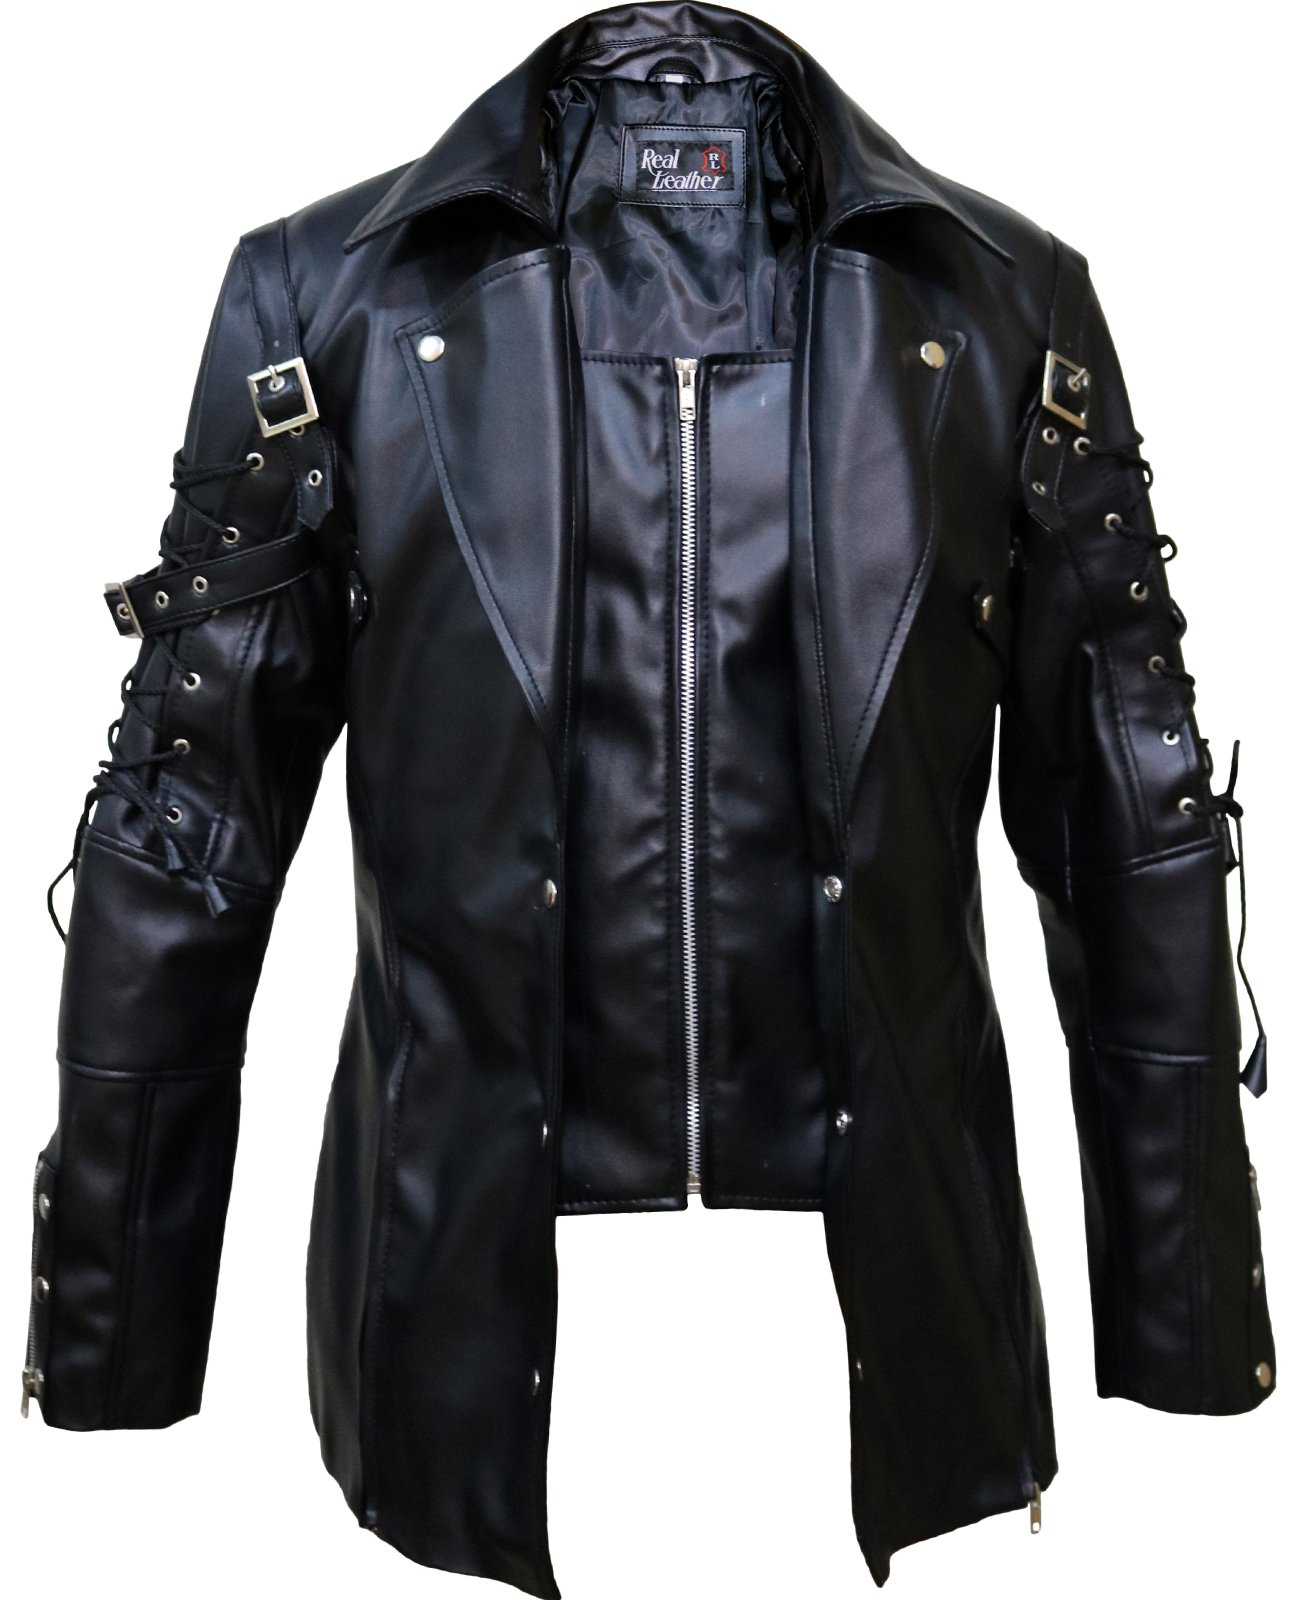 Punk Rave Poison Black Jacket Mens Faux Leather Goth Steampunk Military Coat, XXS-3XL 2